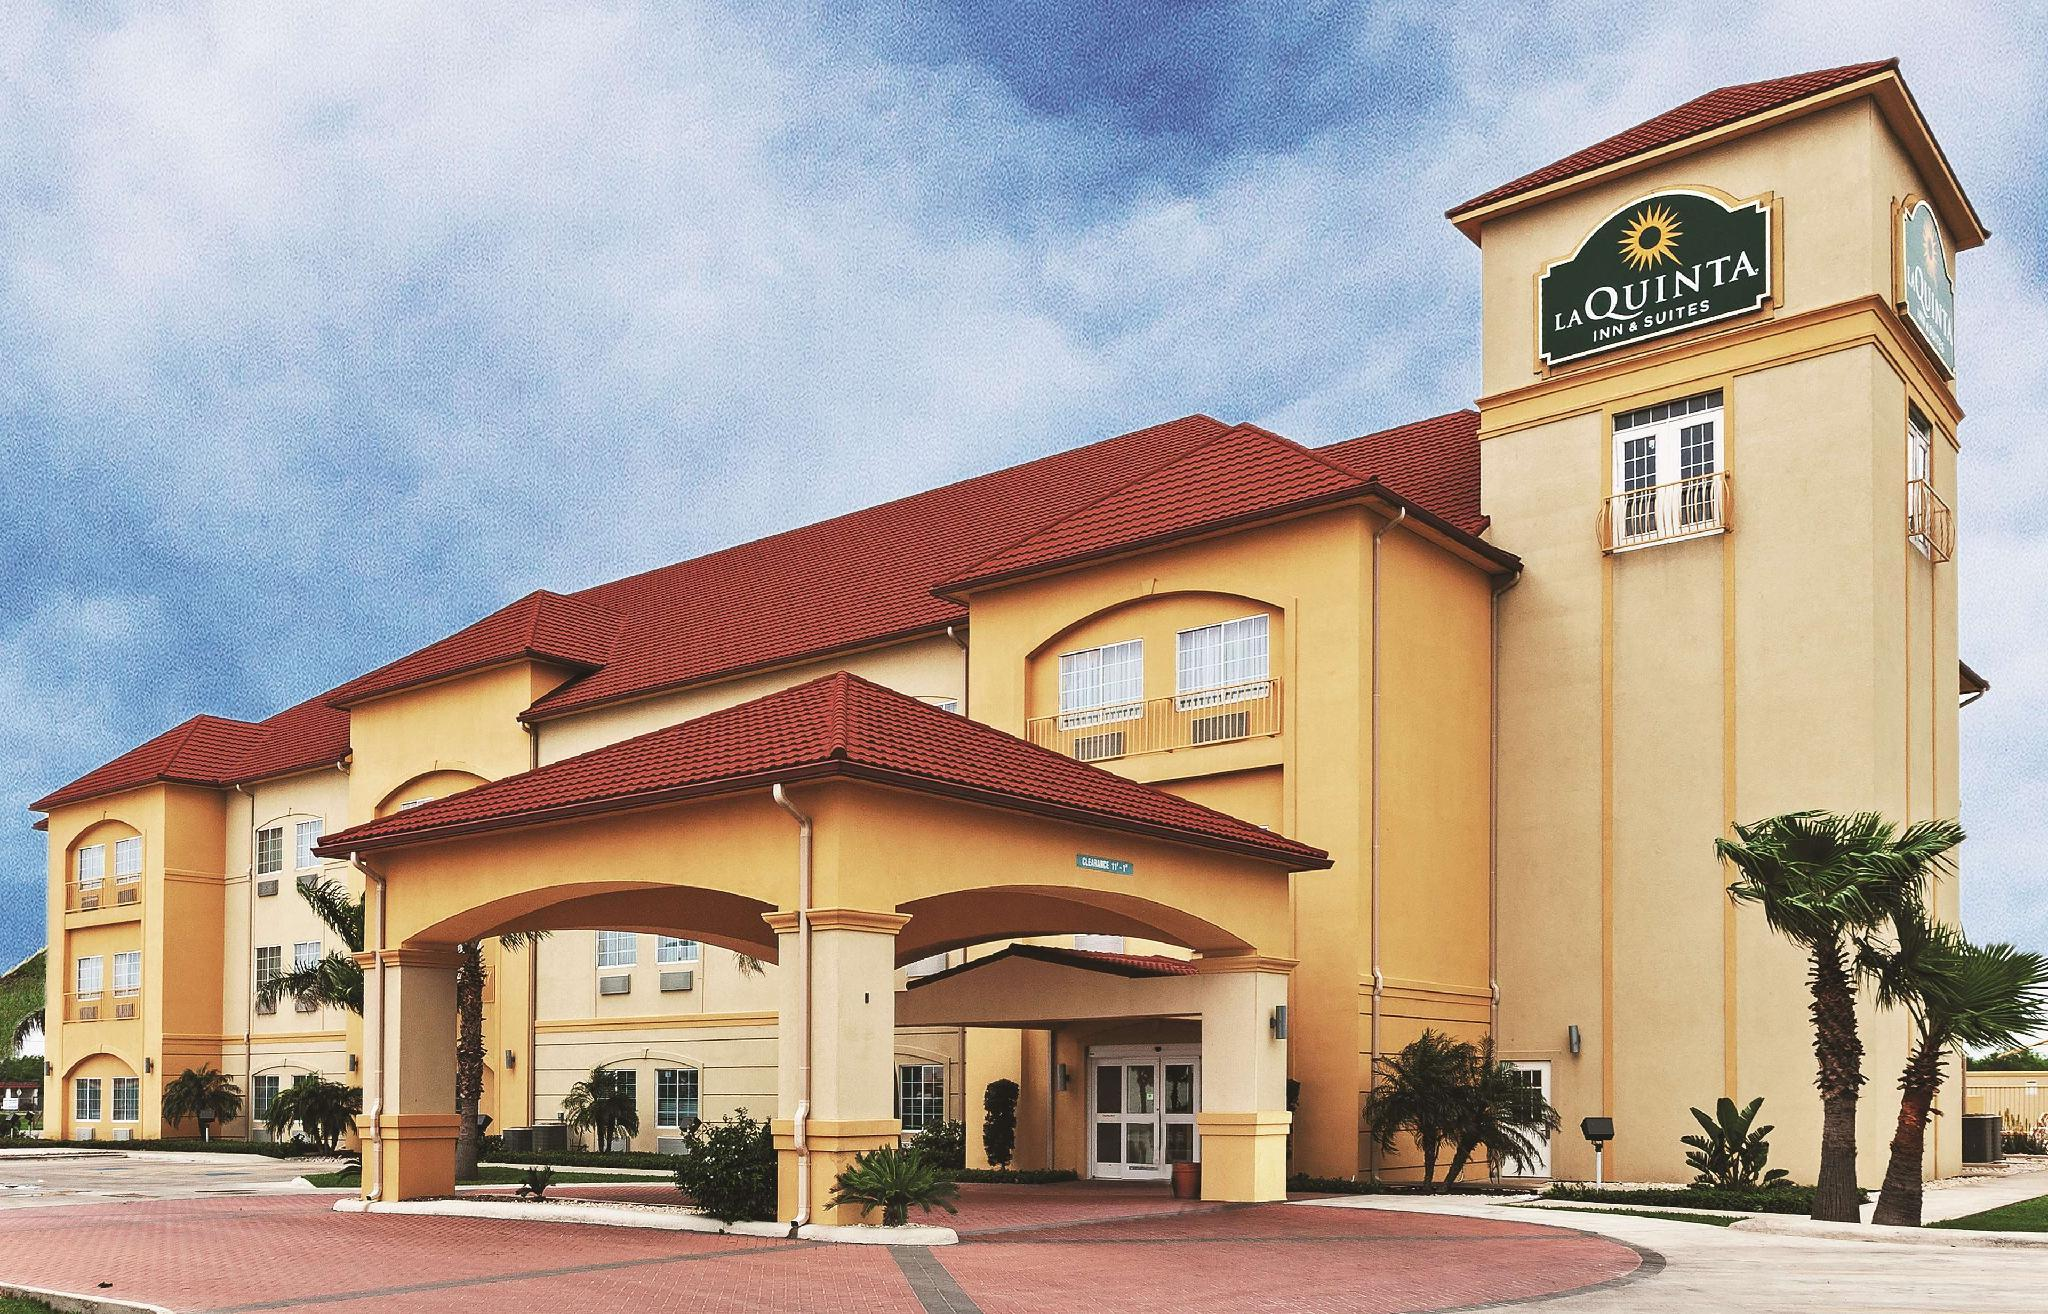 La Quinta Inn And Suites By Wyndham Raymondville